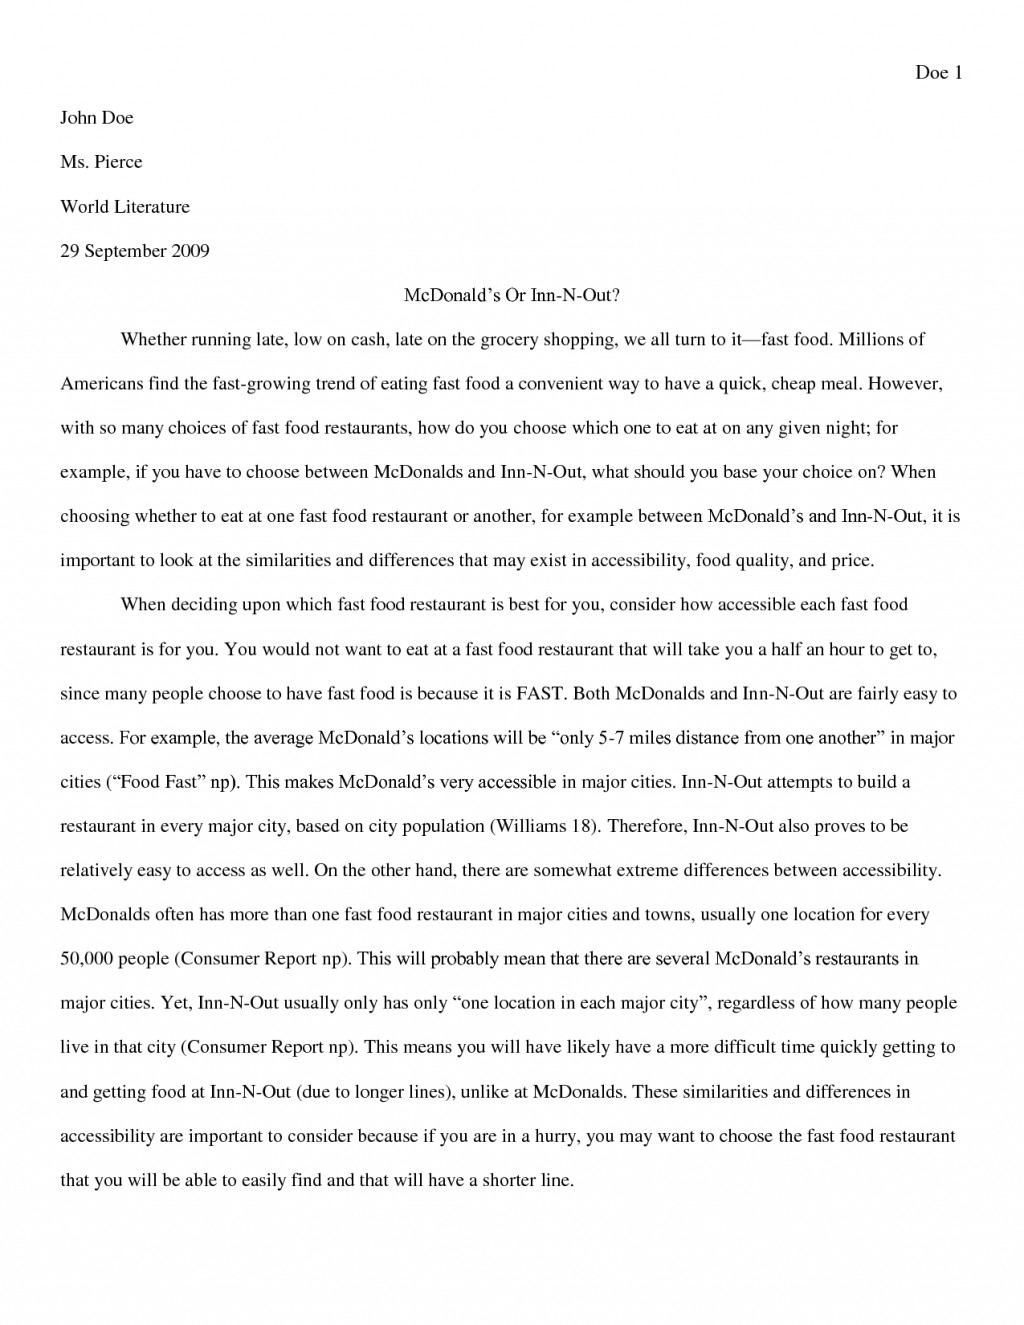 006 High School Essay Sample Papers 526023 On Excellent Preventing Shootings Uniforms Conclusion Uniform Large